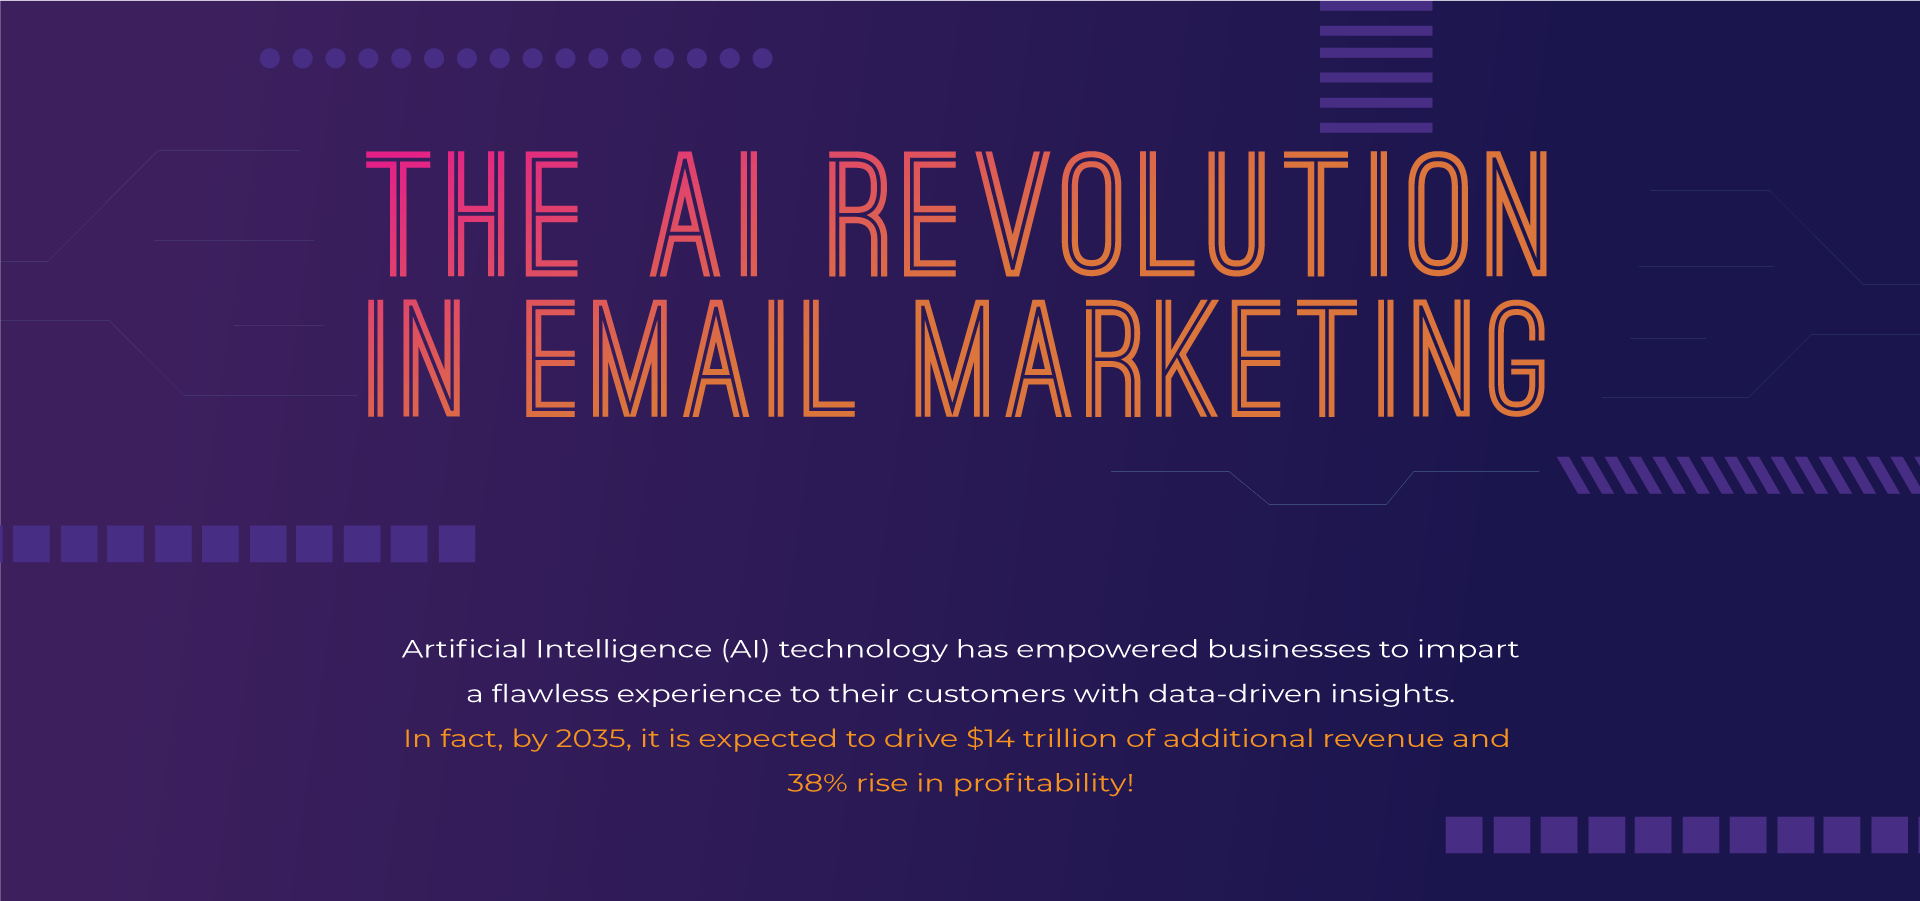 7 Ways that AI is Revolutionizing Email Marketing